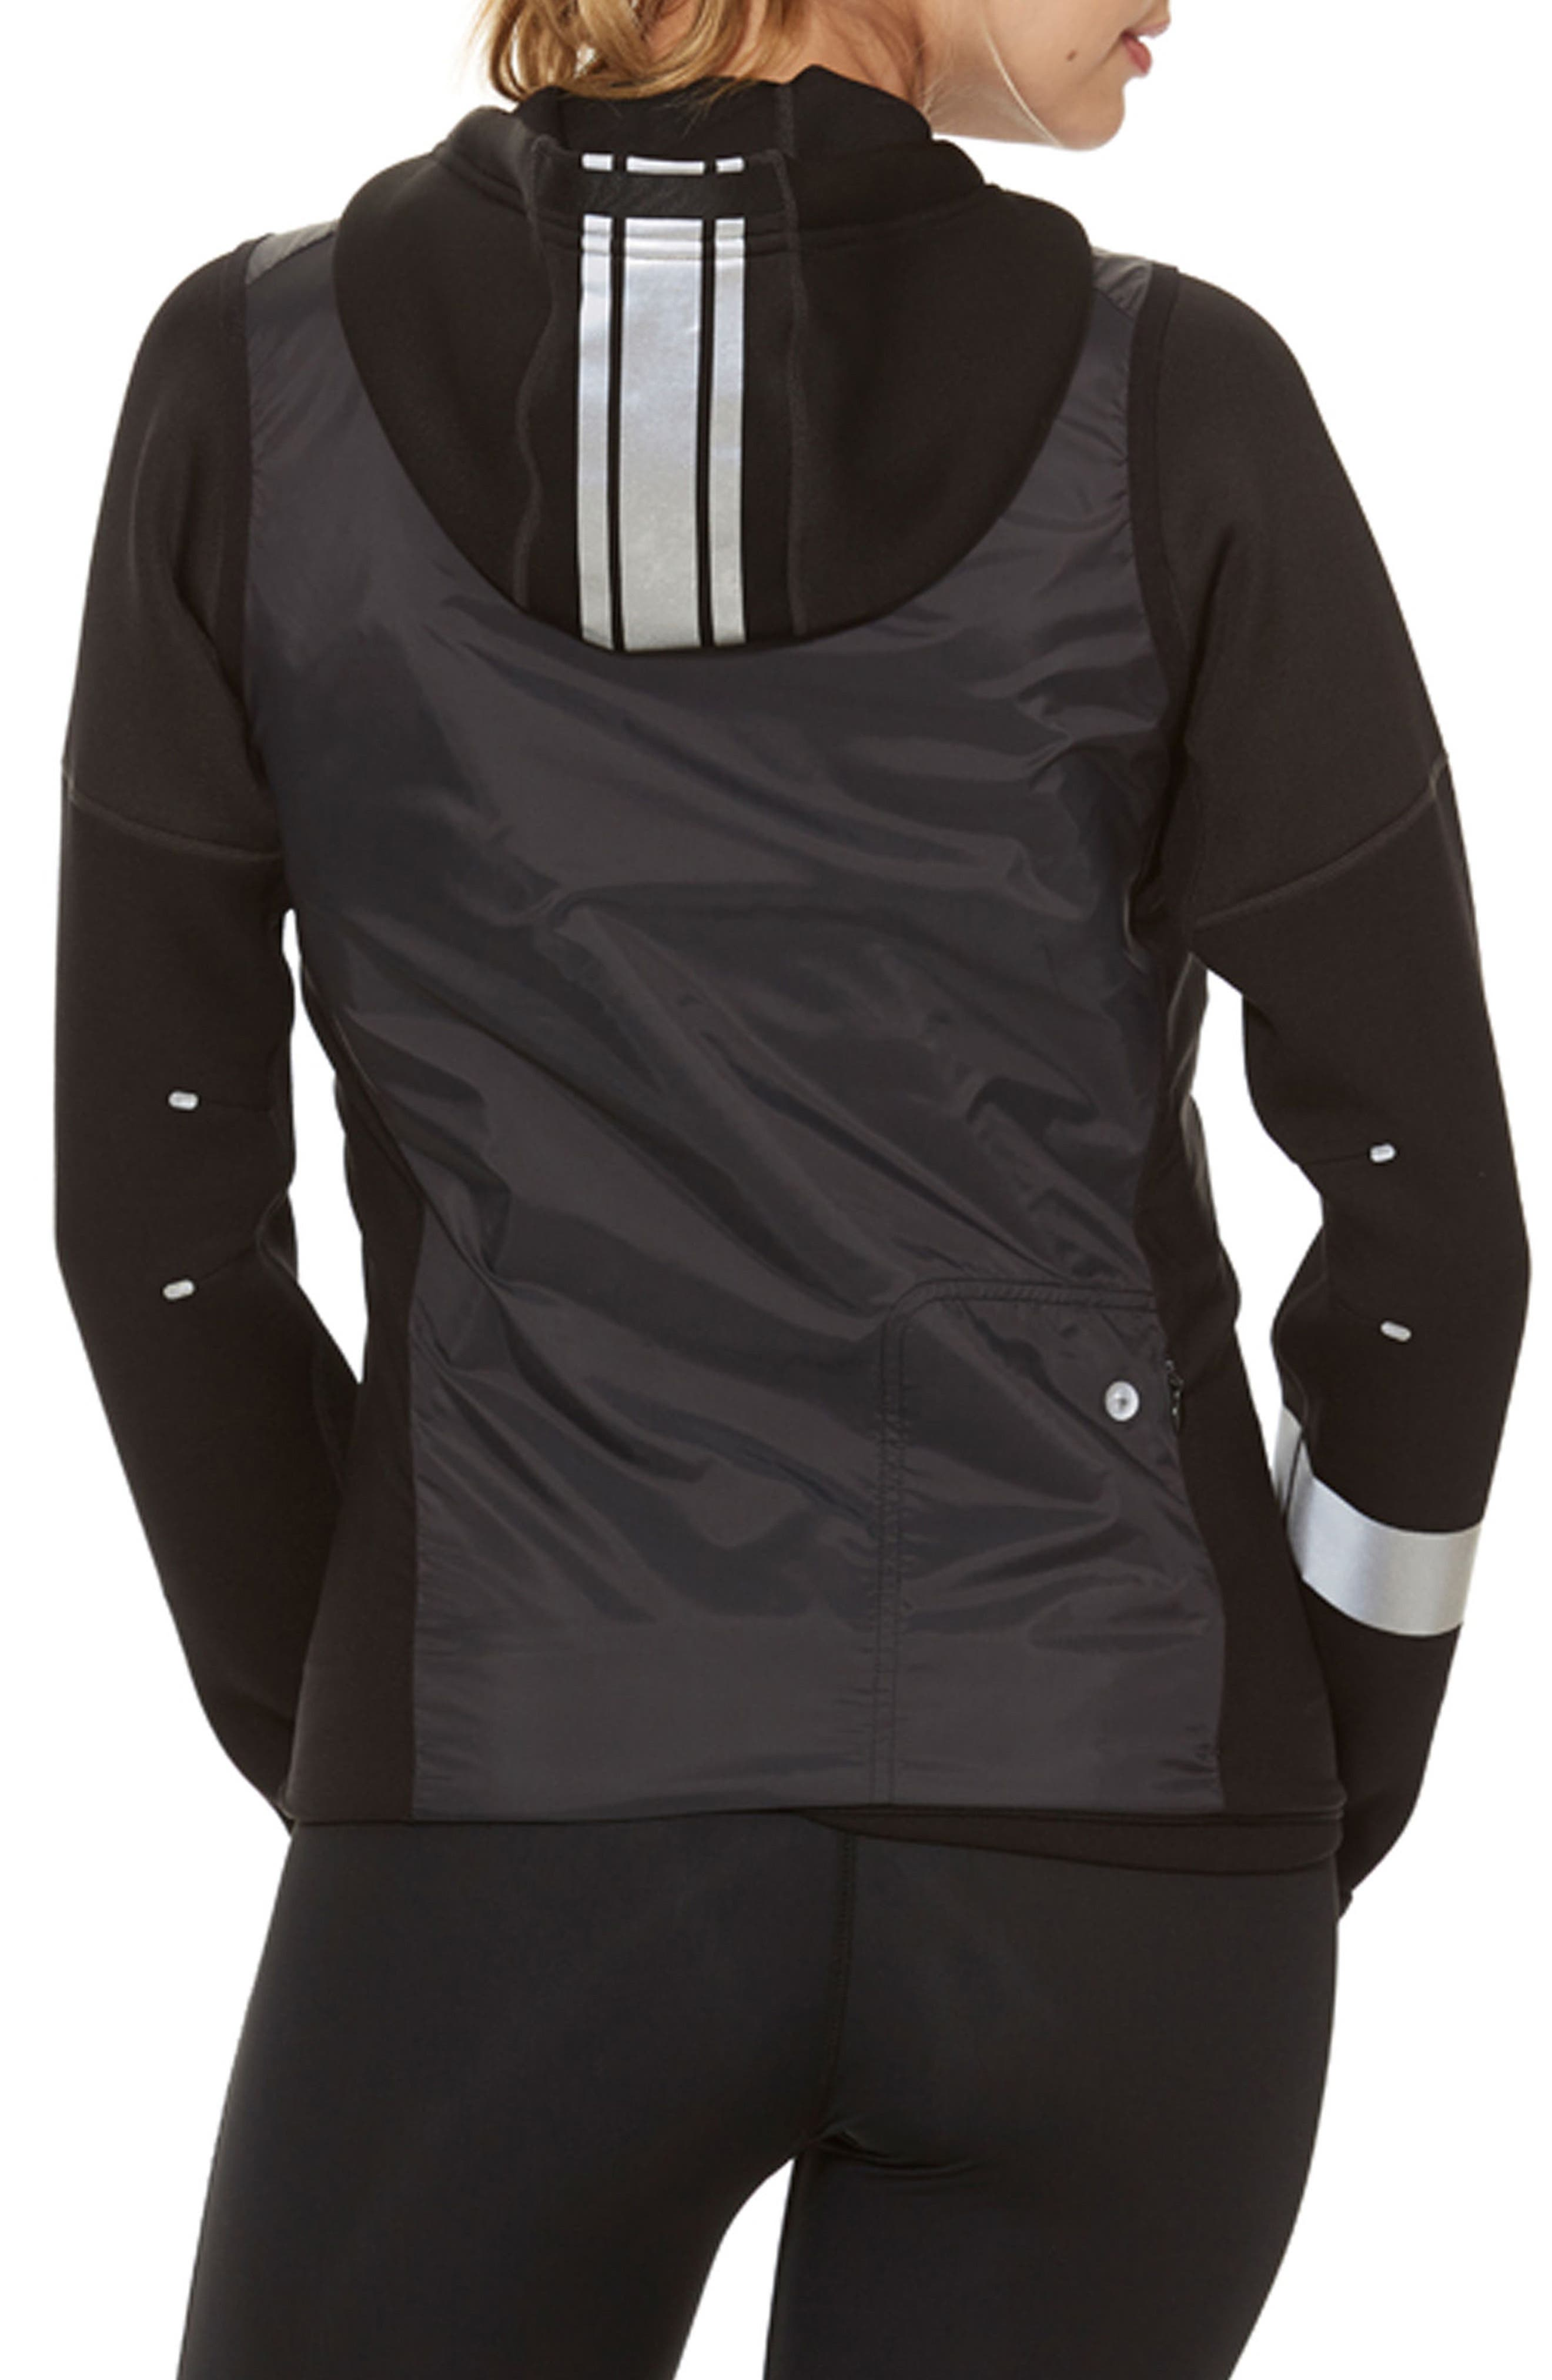 Brecon Beacons Water-Resistant & Windproof Insulated 2-in-1 Jacket,                             Alternate thumbnail 2, color,                             Black